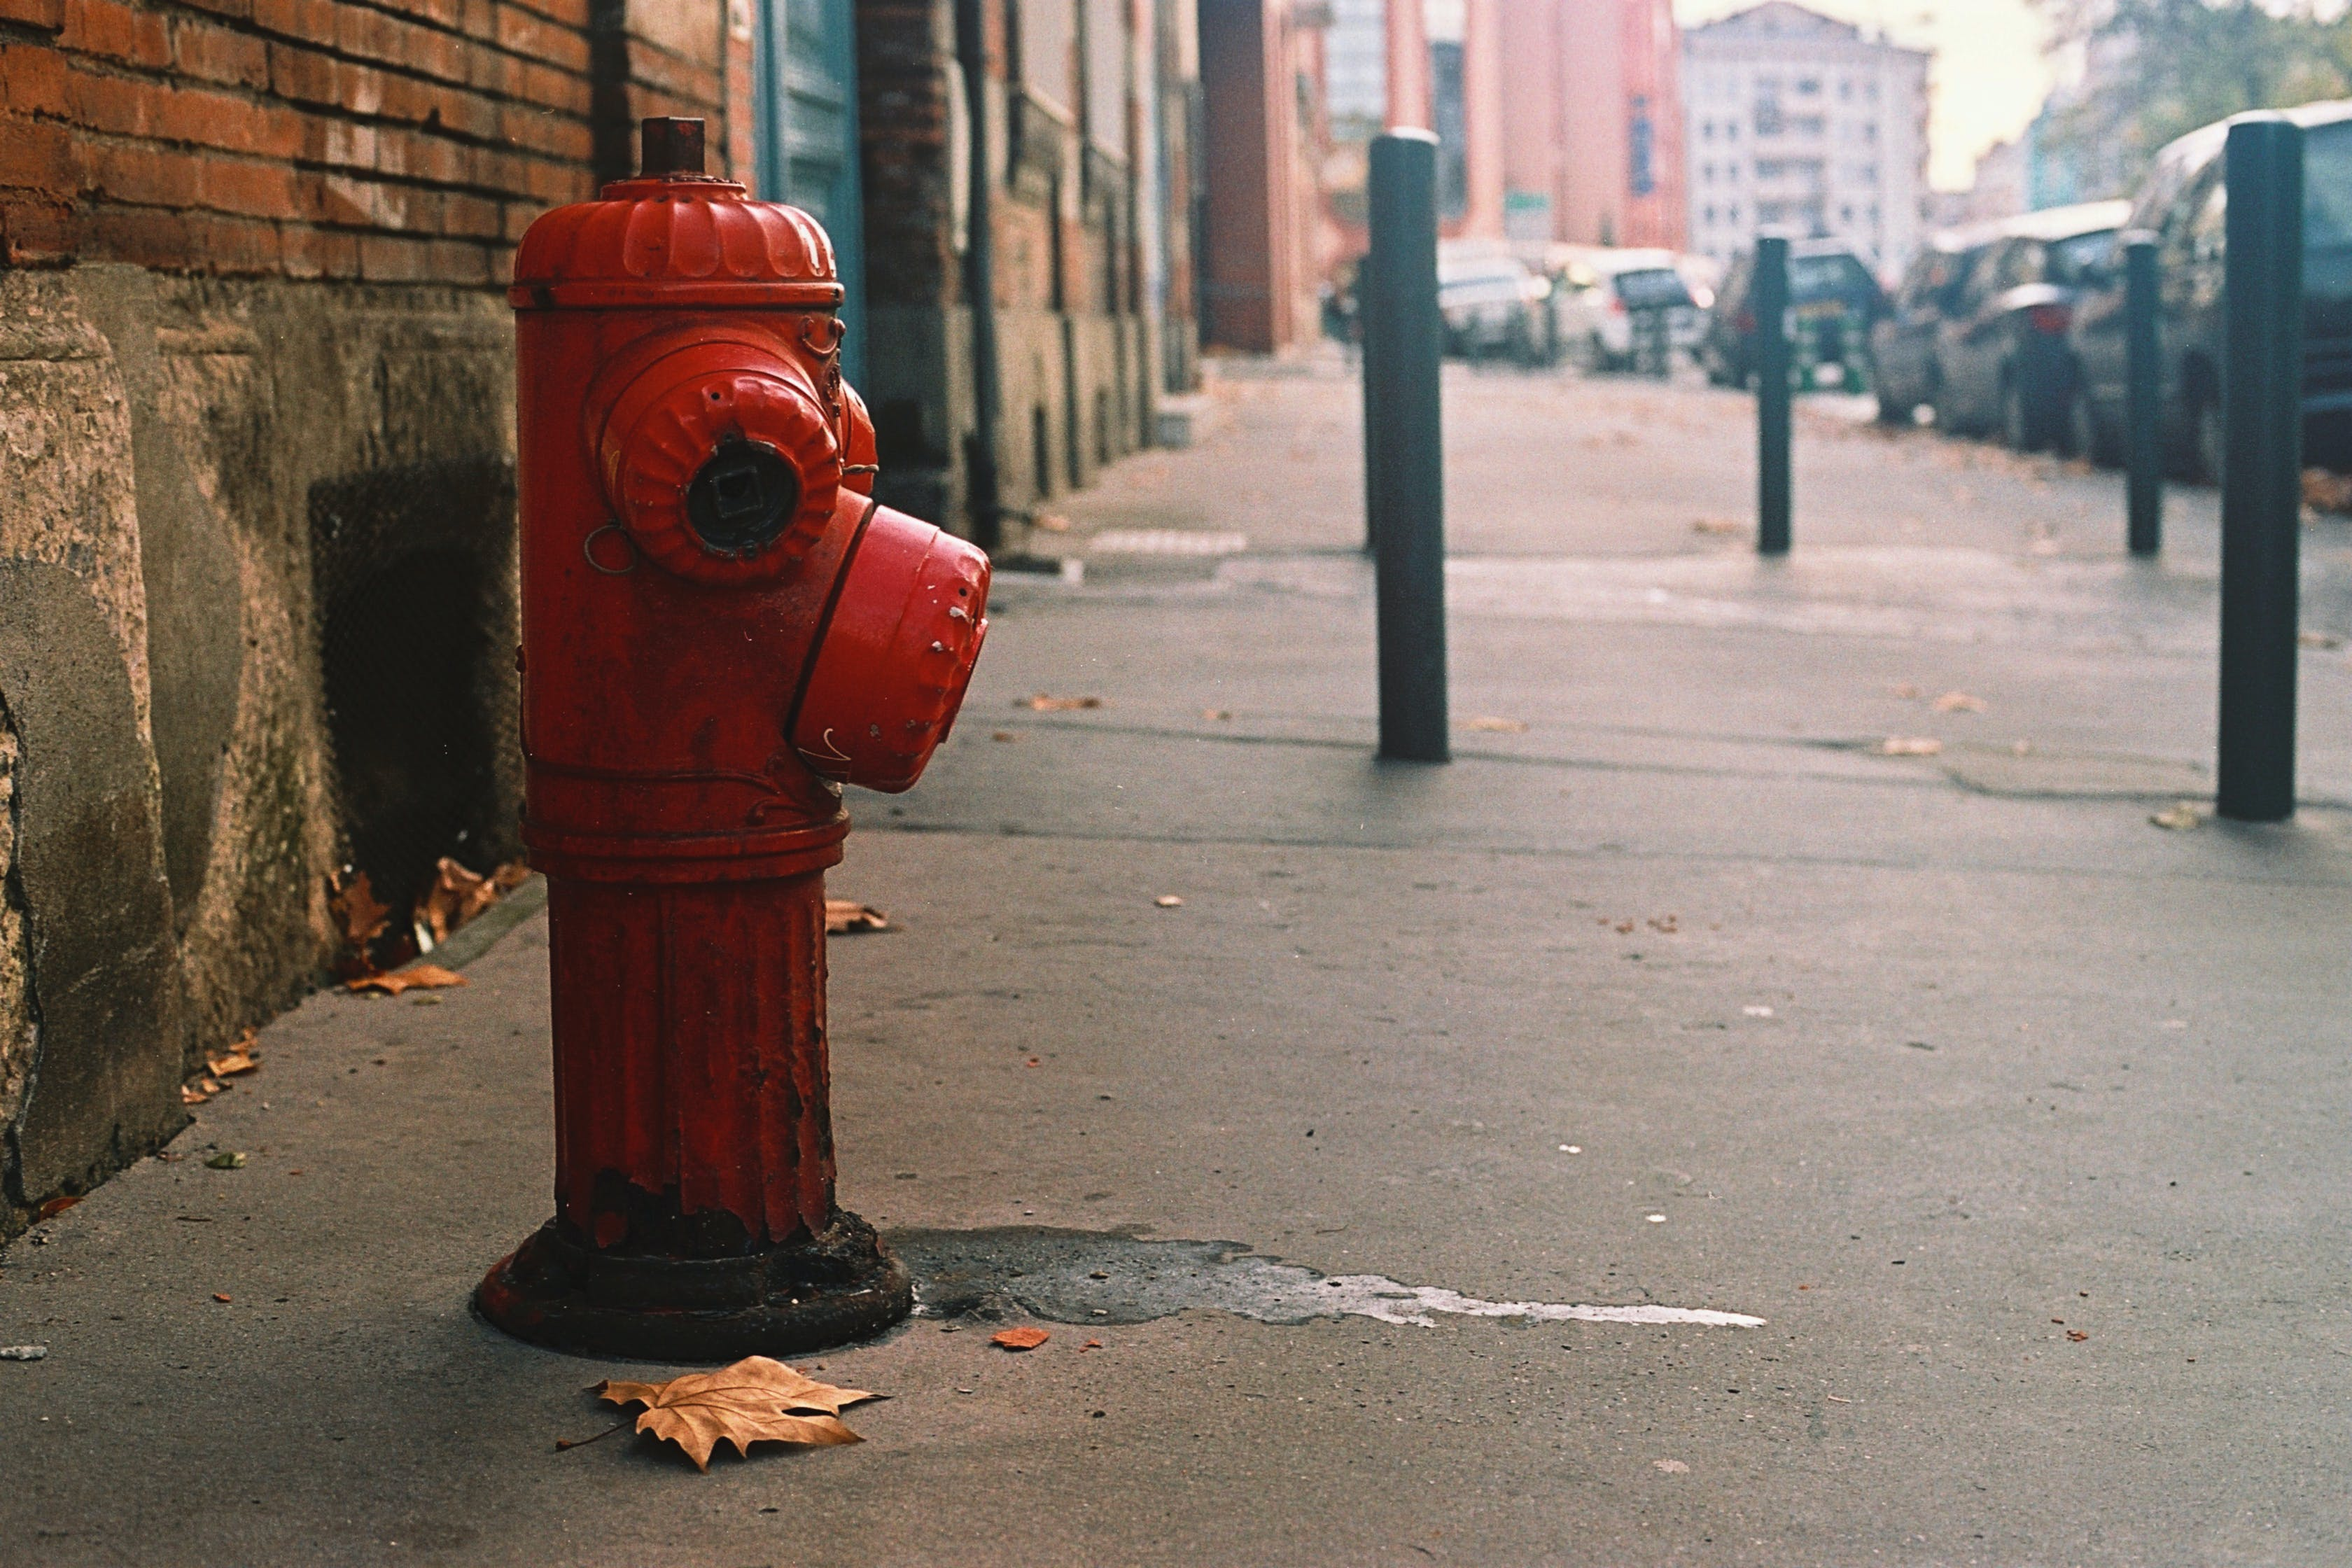 Free stock photo of city, fire hidrant, pavement, street